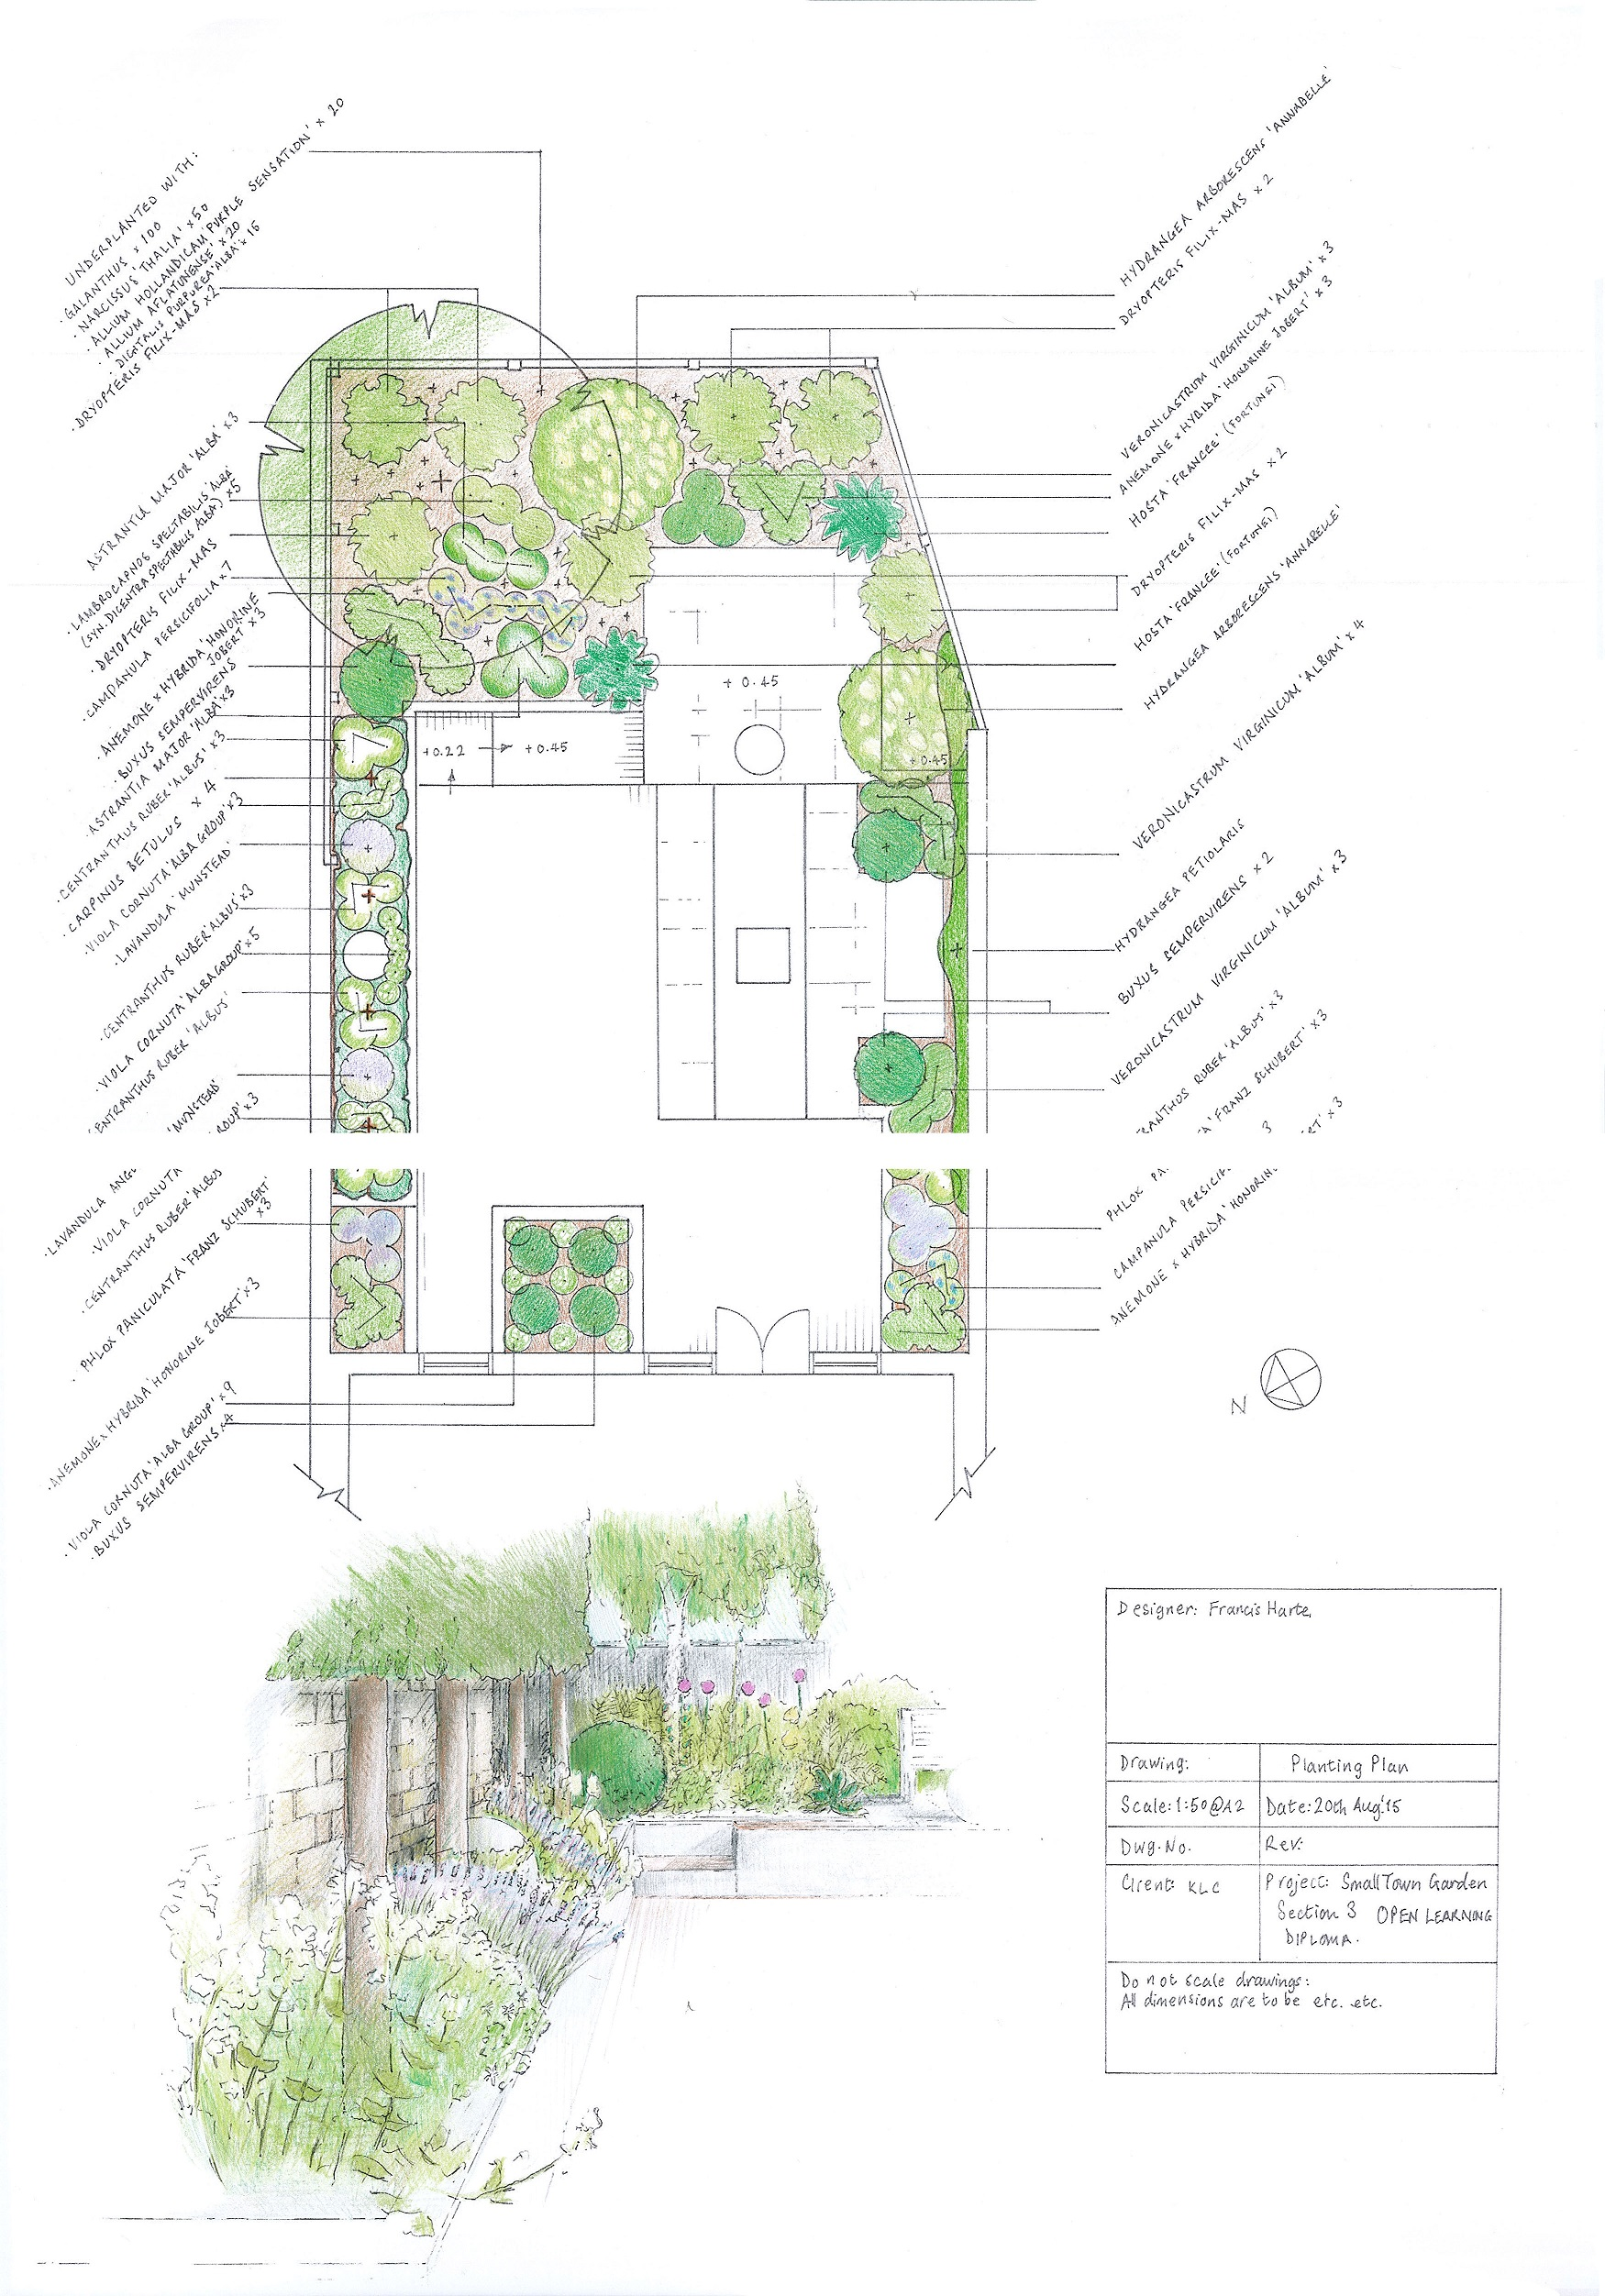 3.2 Small Town Garden Planting Plan with Sketch by Francis Harte